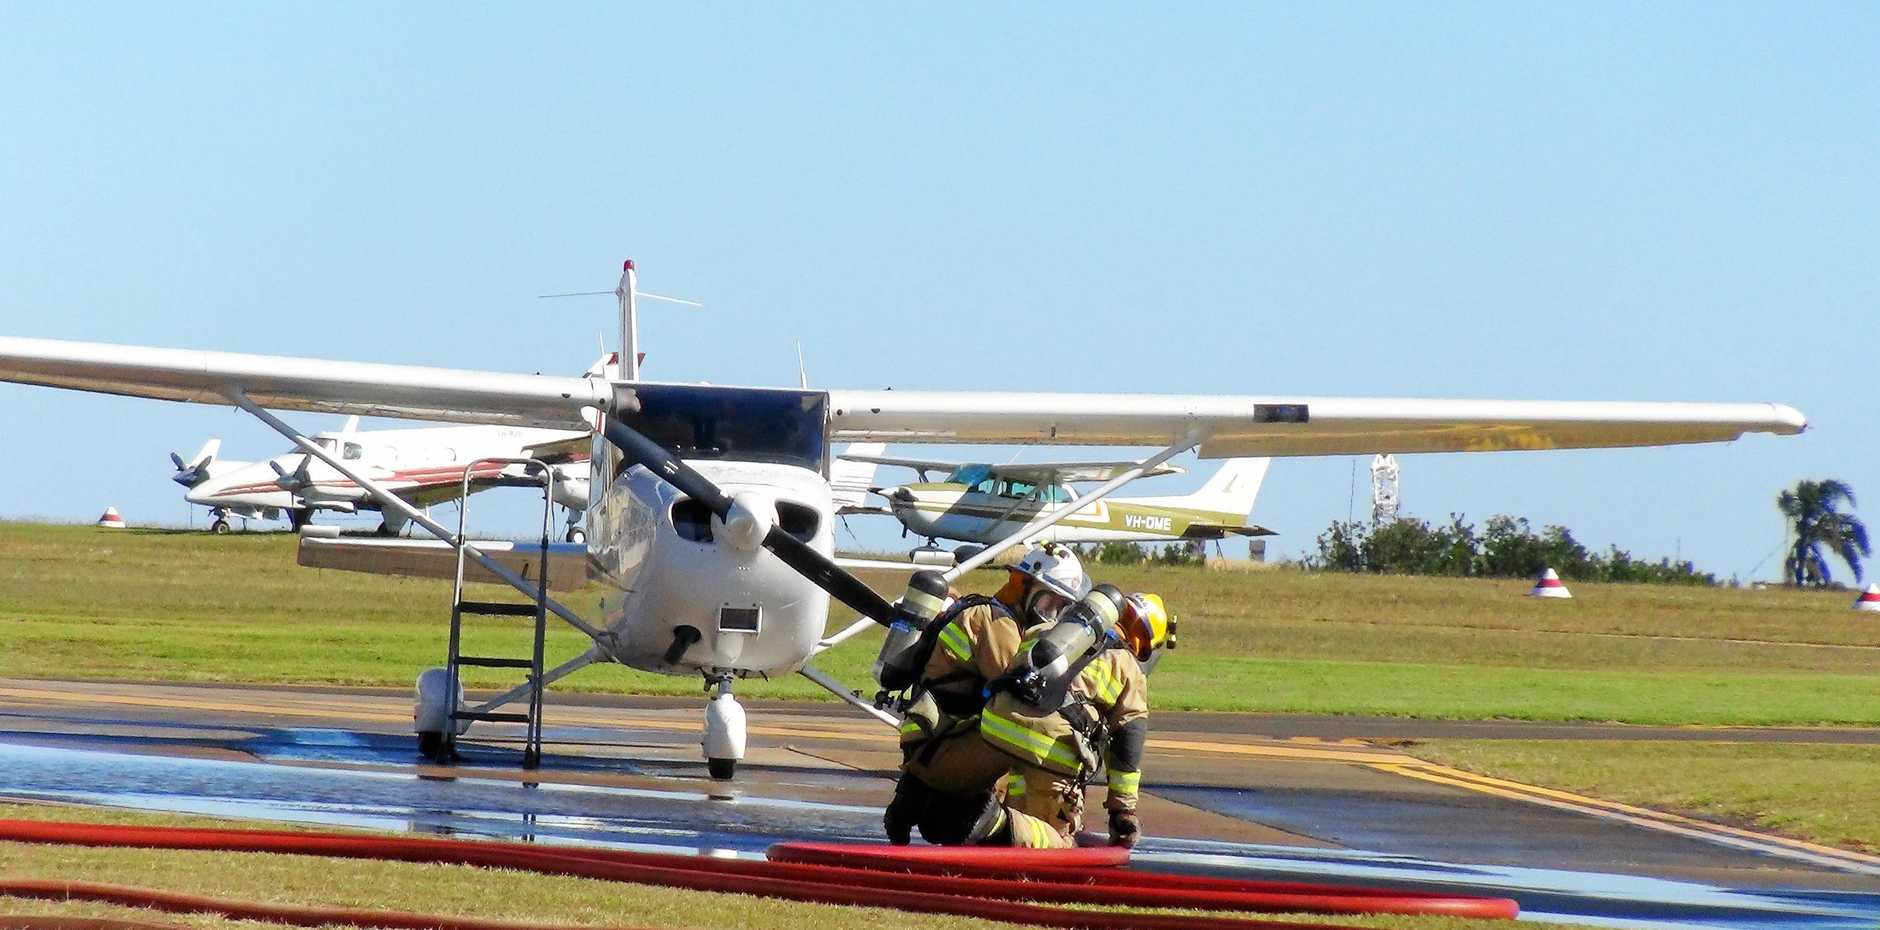 EMERGENCY PROCEDURES: Queensland Fire and Emergency Services officers take part in a simulated aircraft refuelling fire at the Toowoomba aerodrome yesterday.